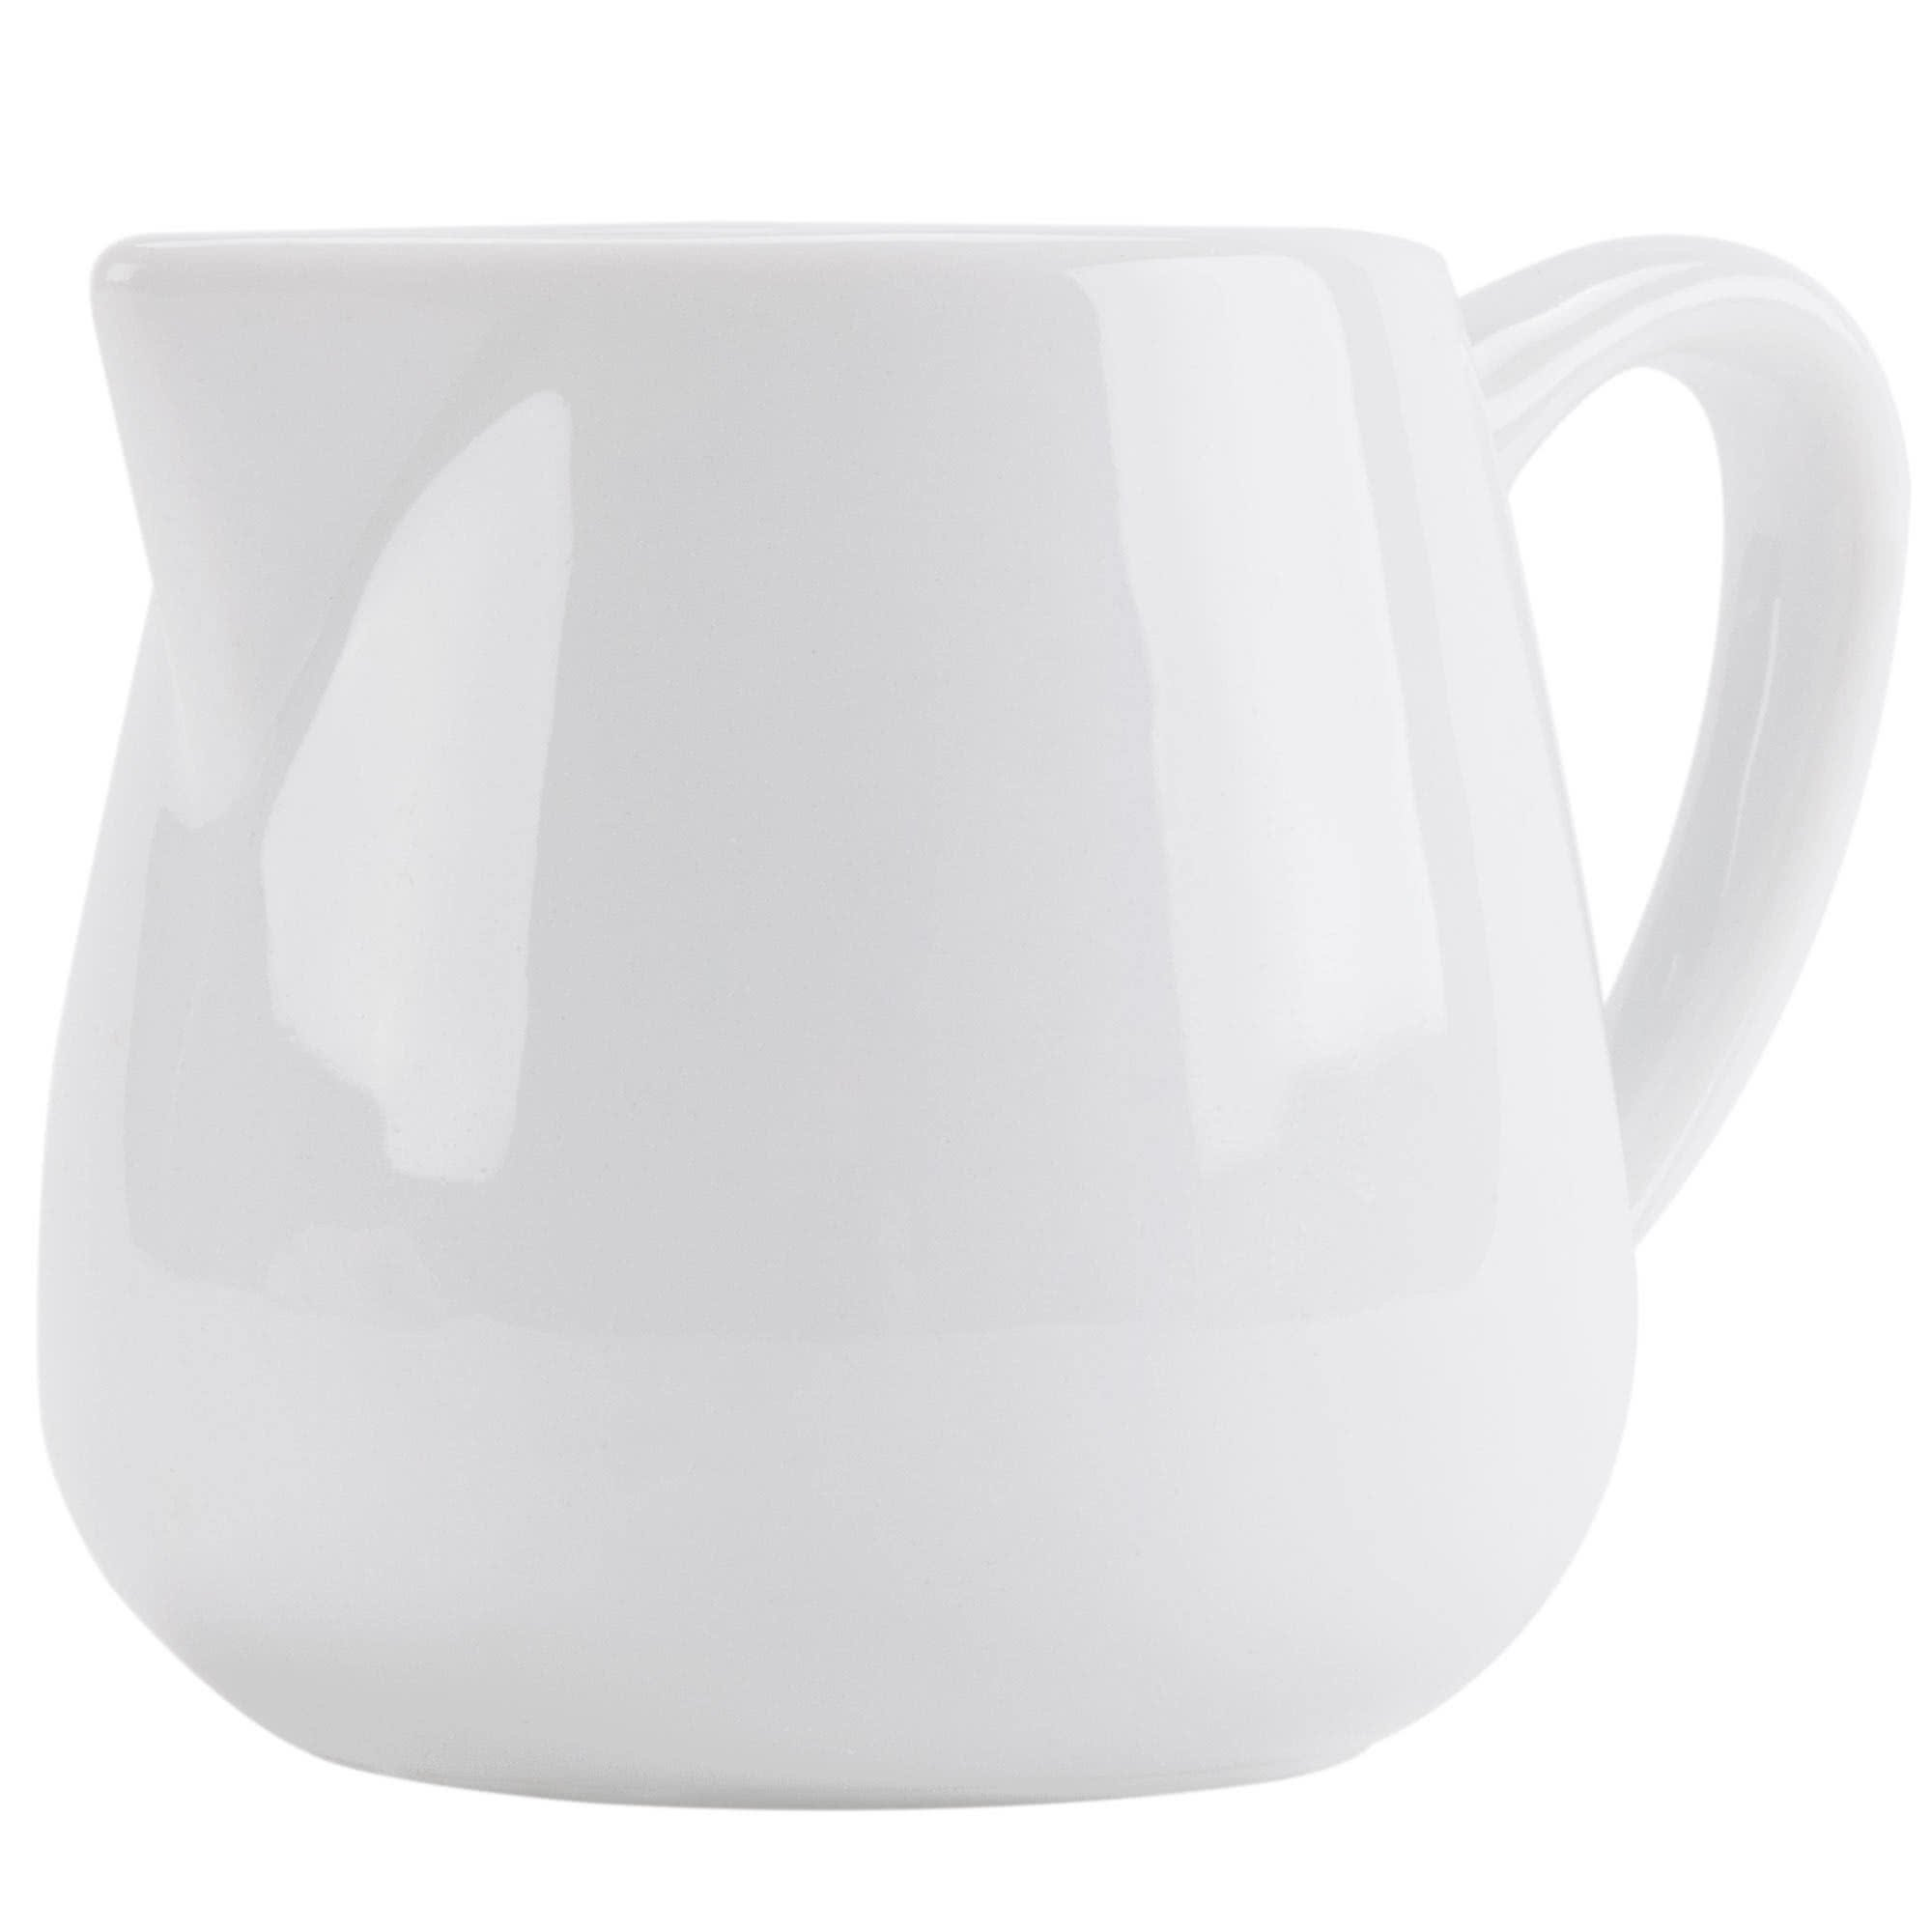 Tabletop King PC-404 Bright White Porcelain 2.5 oz. Creamer with Handle - 36/Case